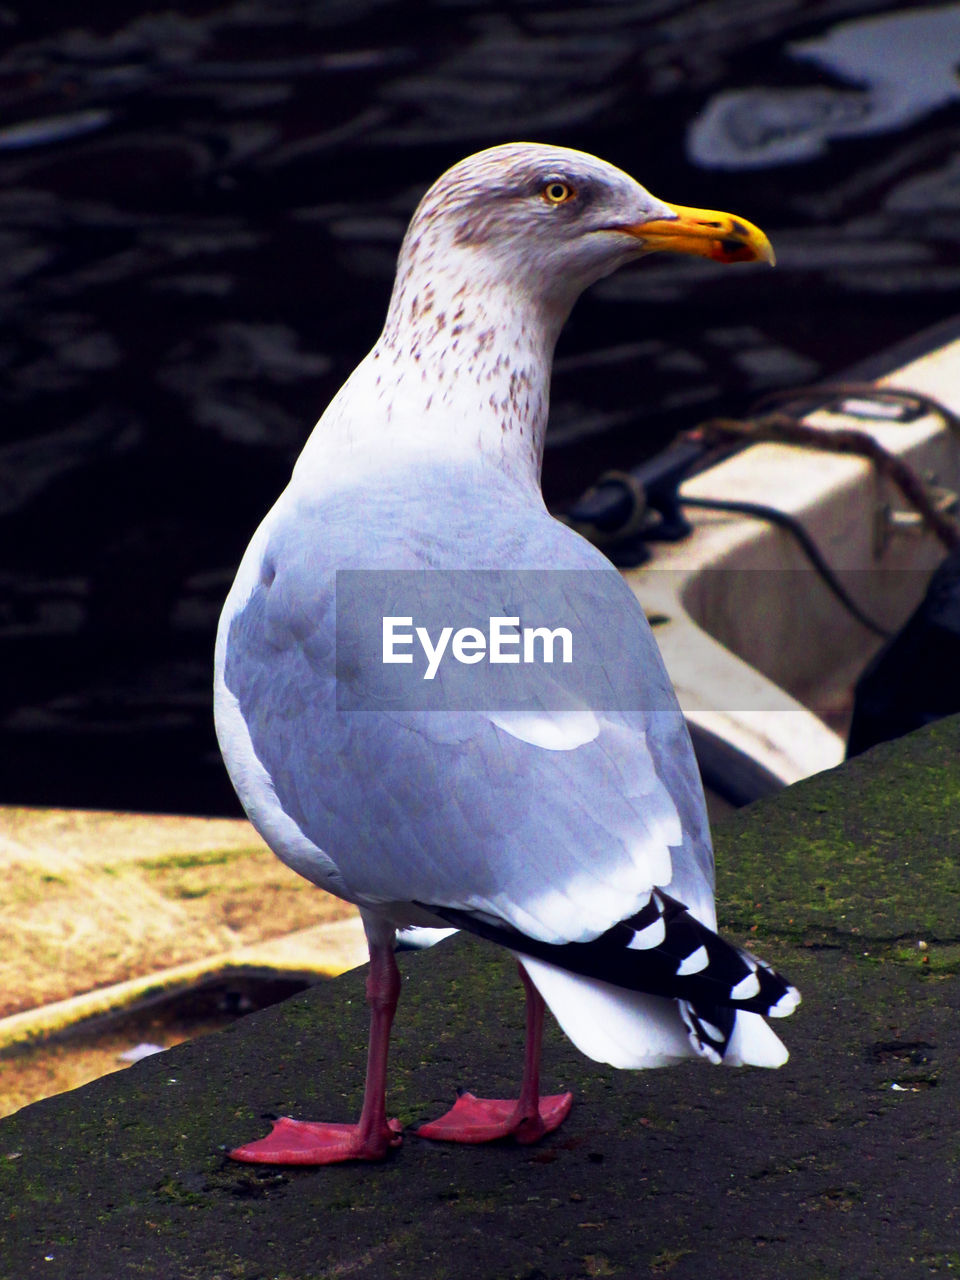 bird, animal themes, animal, vertebrate, animals in the wild, one animal, animal wildlife, day, close-up, no people, nature, perching, focus on foreground, full length, sunlight, outdoors, white color, beak, looking, pigeon